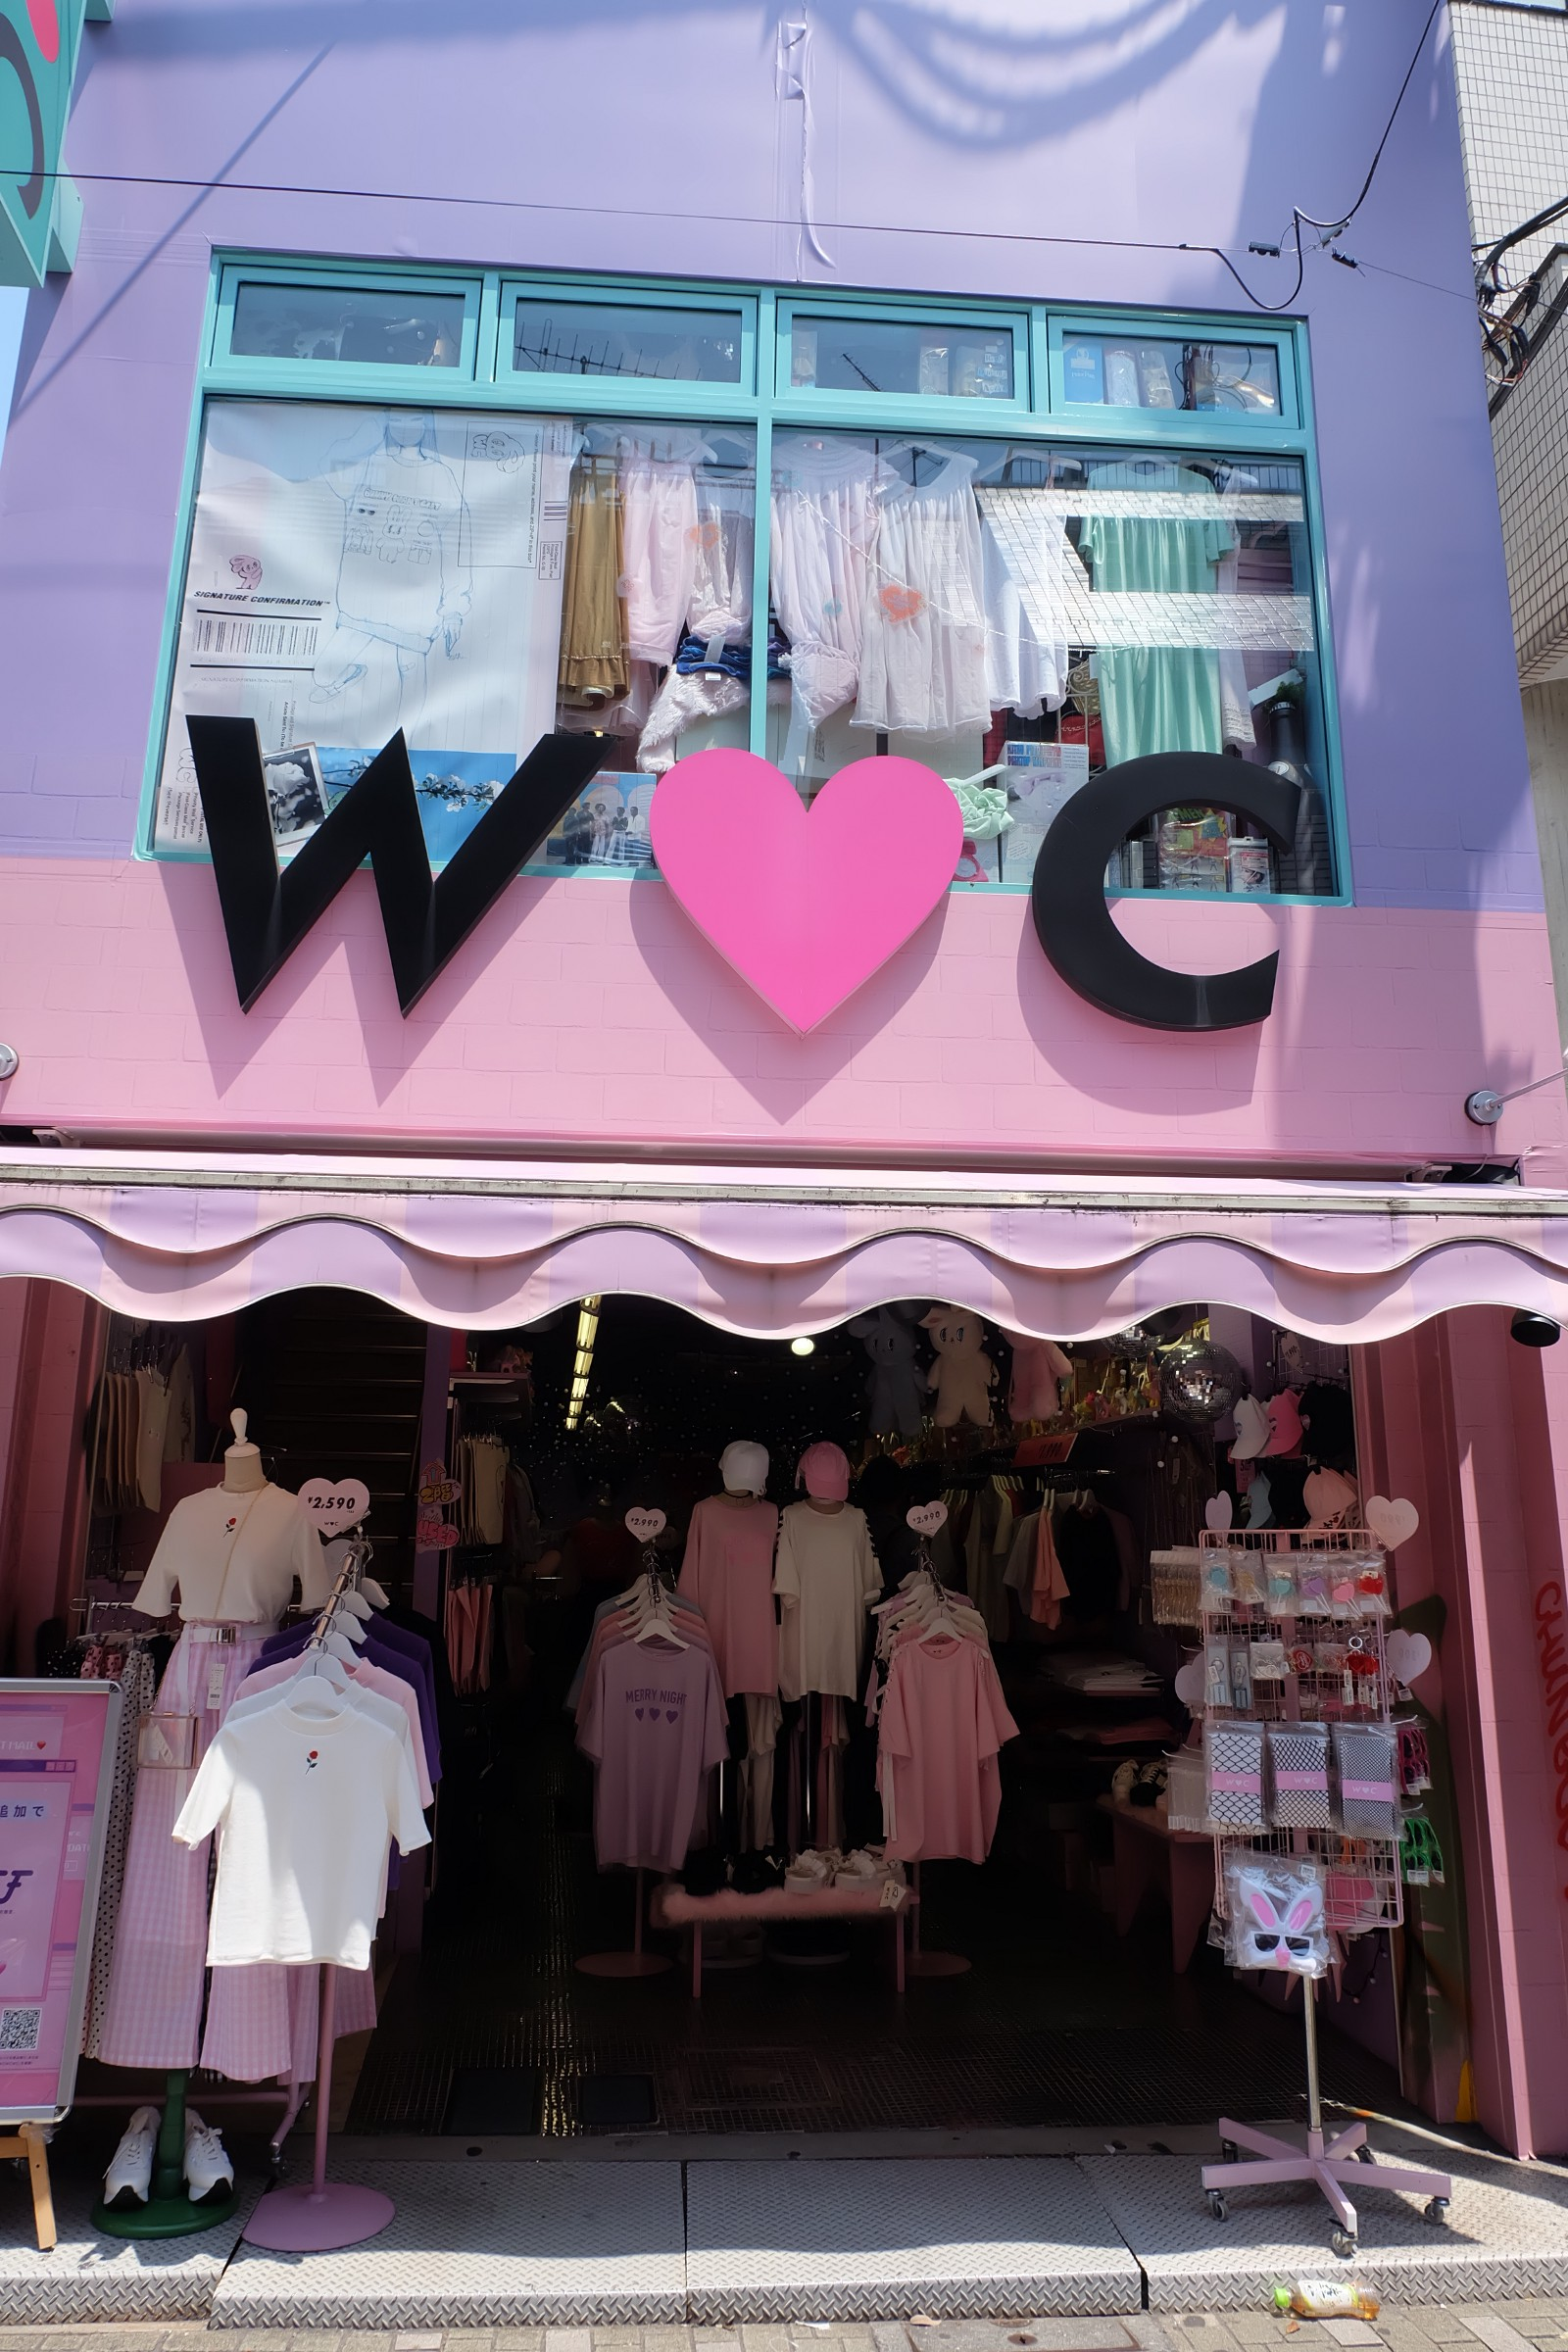 Affordable clothing store, WC